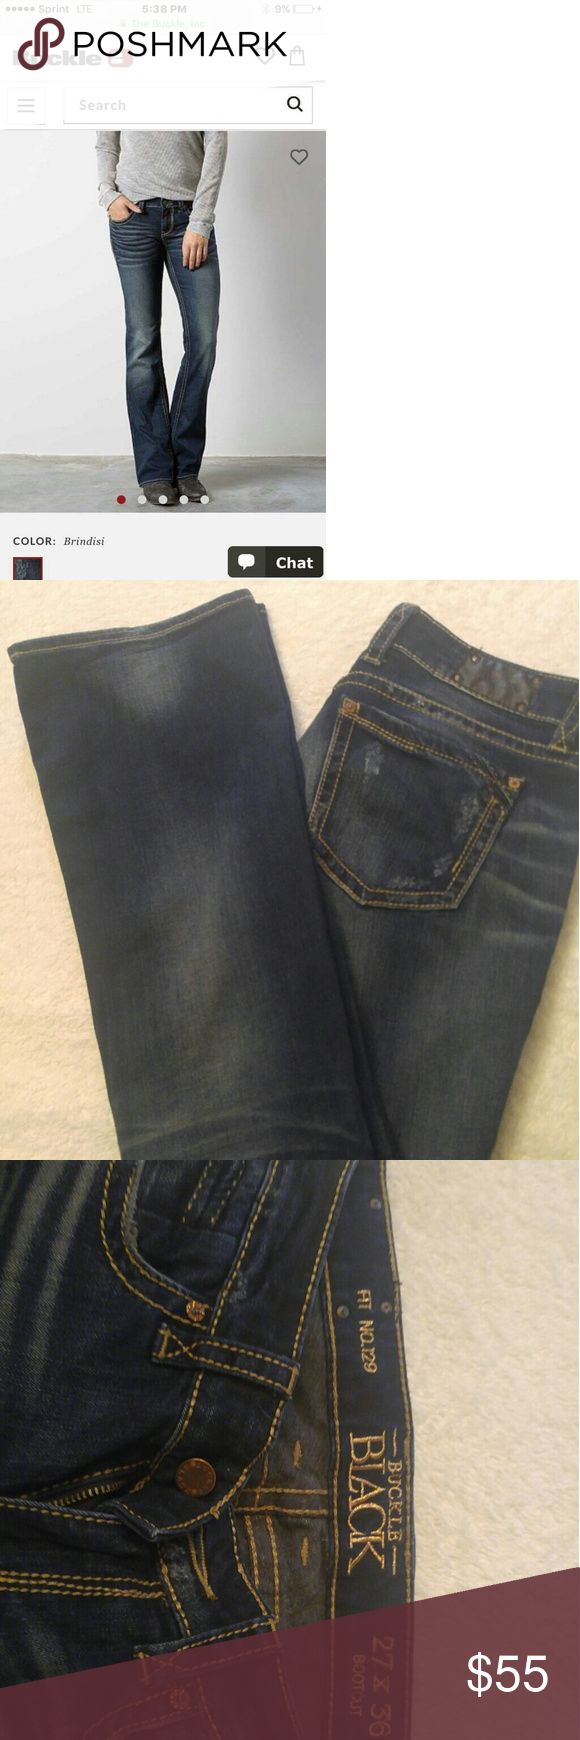 BKE womens bootcut jeans Dark rinse, seriously just like brand new. They are too long for me. Rare problem but these are awesome jeans. Very flattering. Perfect condition. Dark rinse. 27w 36inseam BKE Jeans Boot Cut